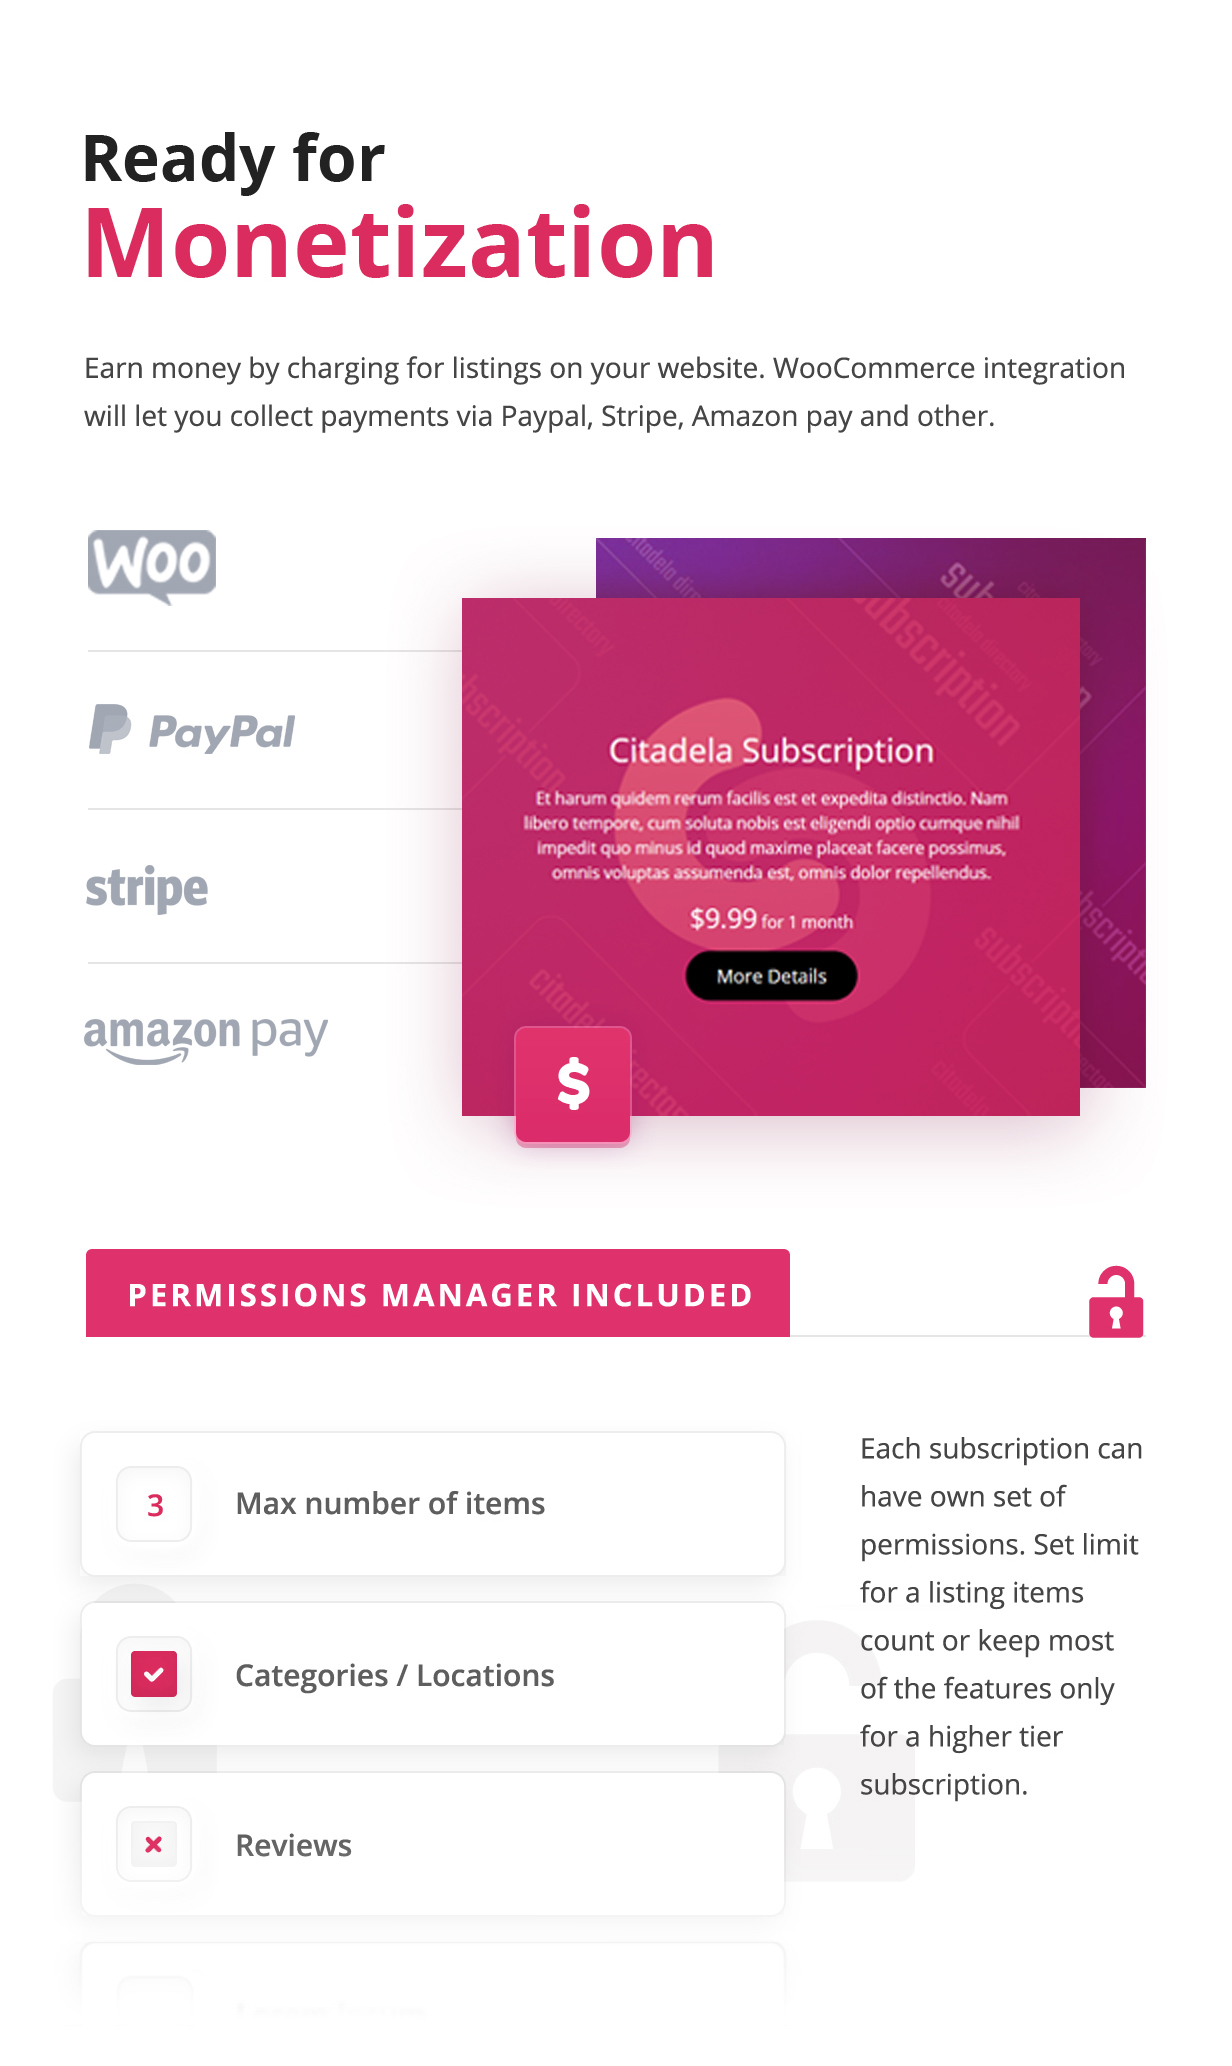 Monetization via WooCommerce with support for PayPal, Stripe, Amazon pay and more